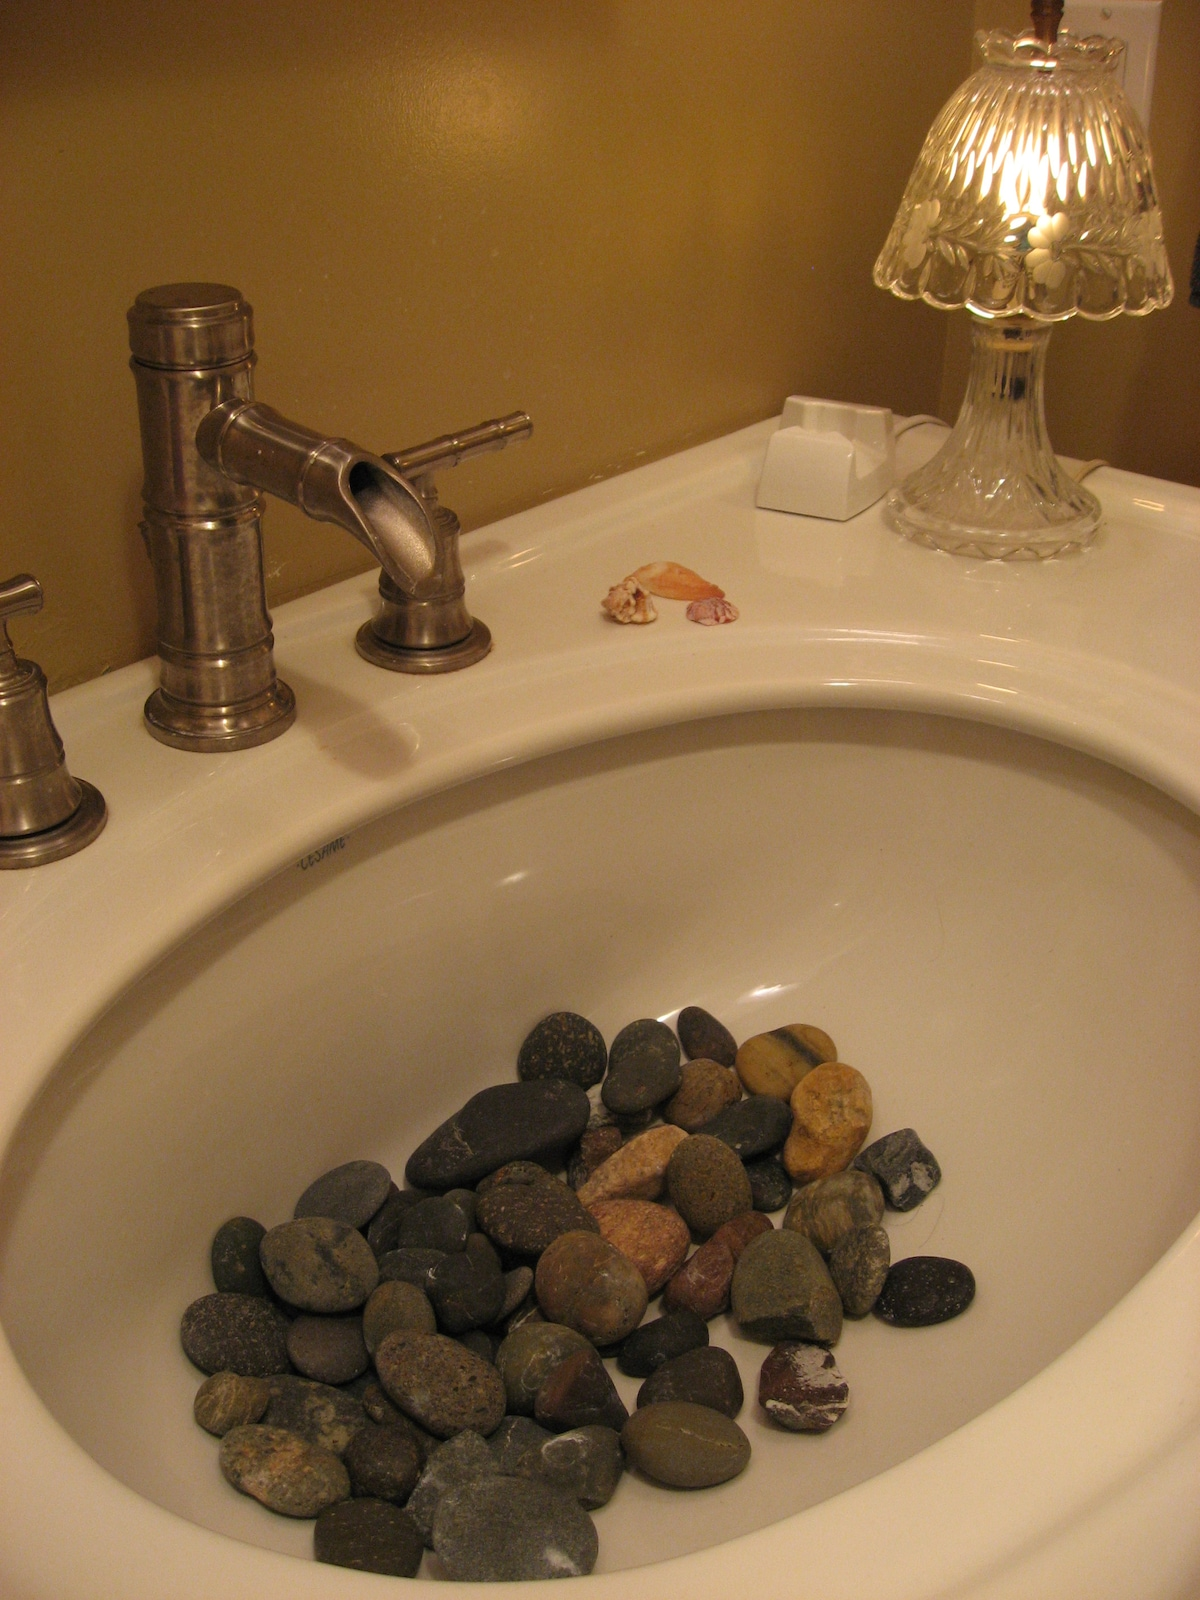 My kids like the aestetic of river rocks in the sink.  Sanitized often or moved if lots of sink use. :)